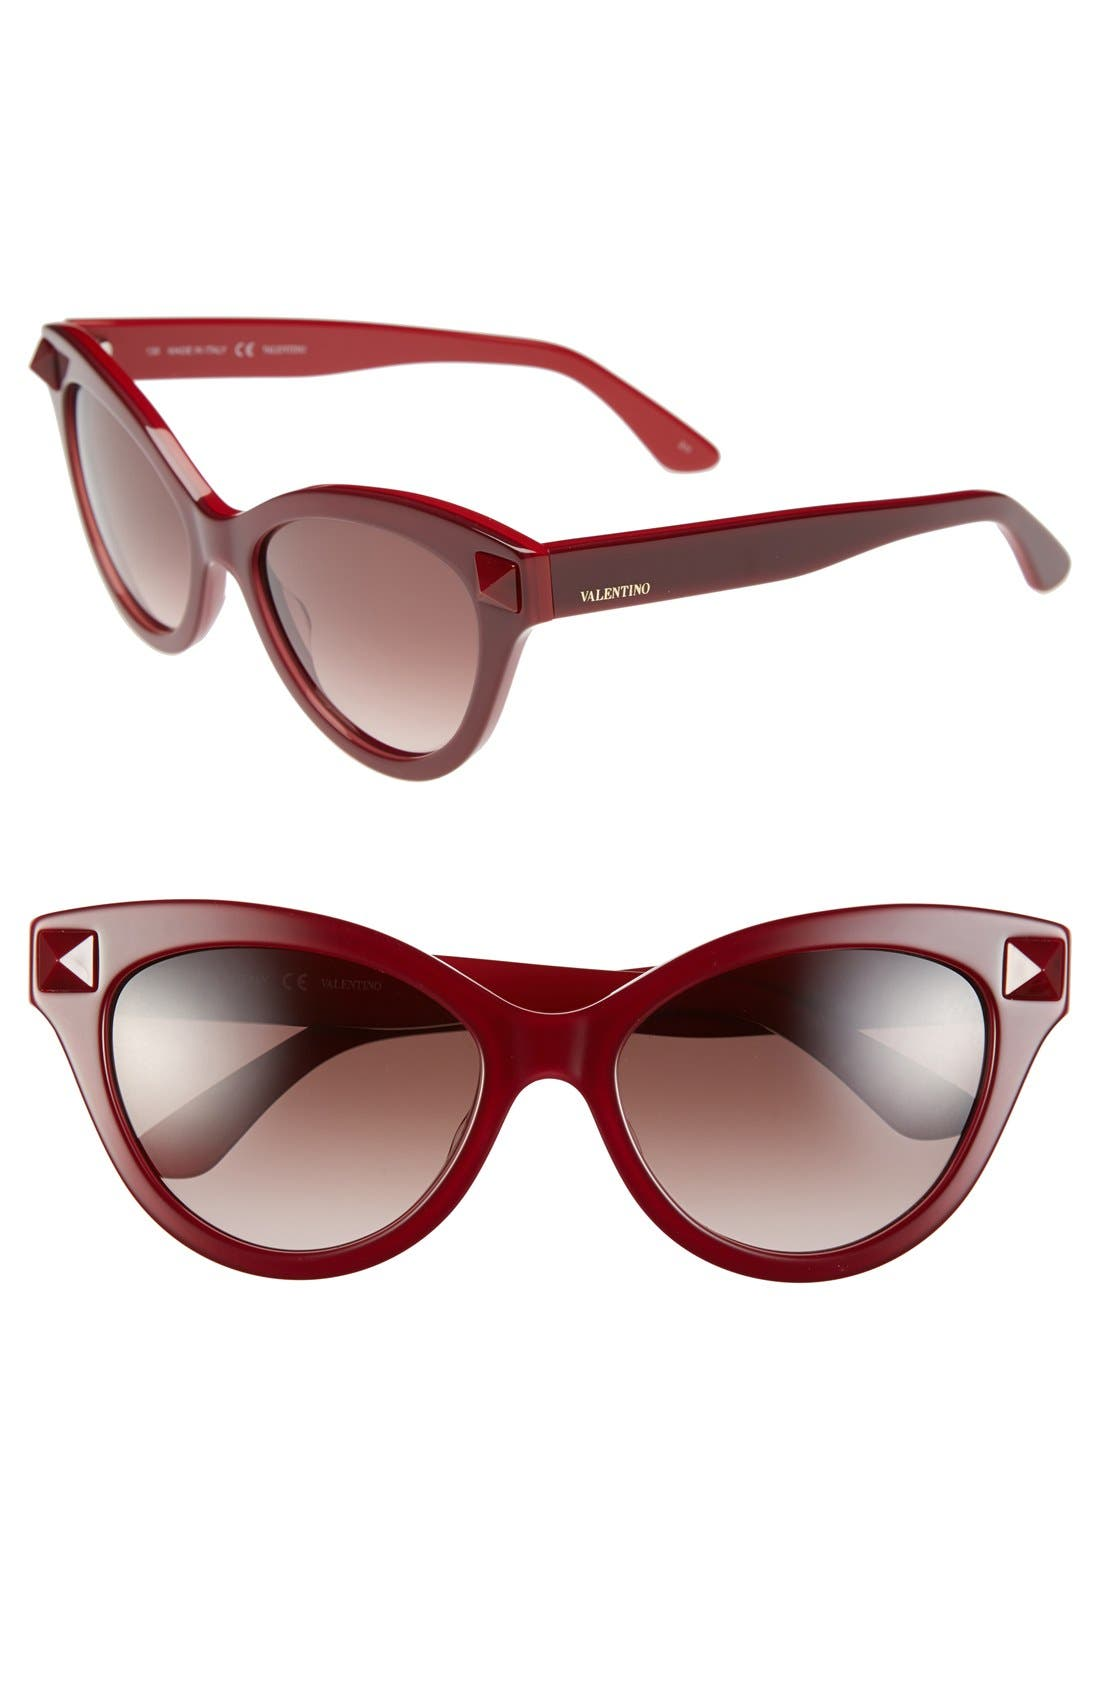 Main Image - Valentino 'Rockstud' 53mm Cat Eye Sunglasses